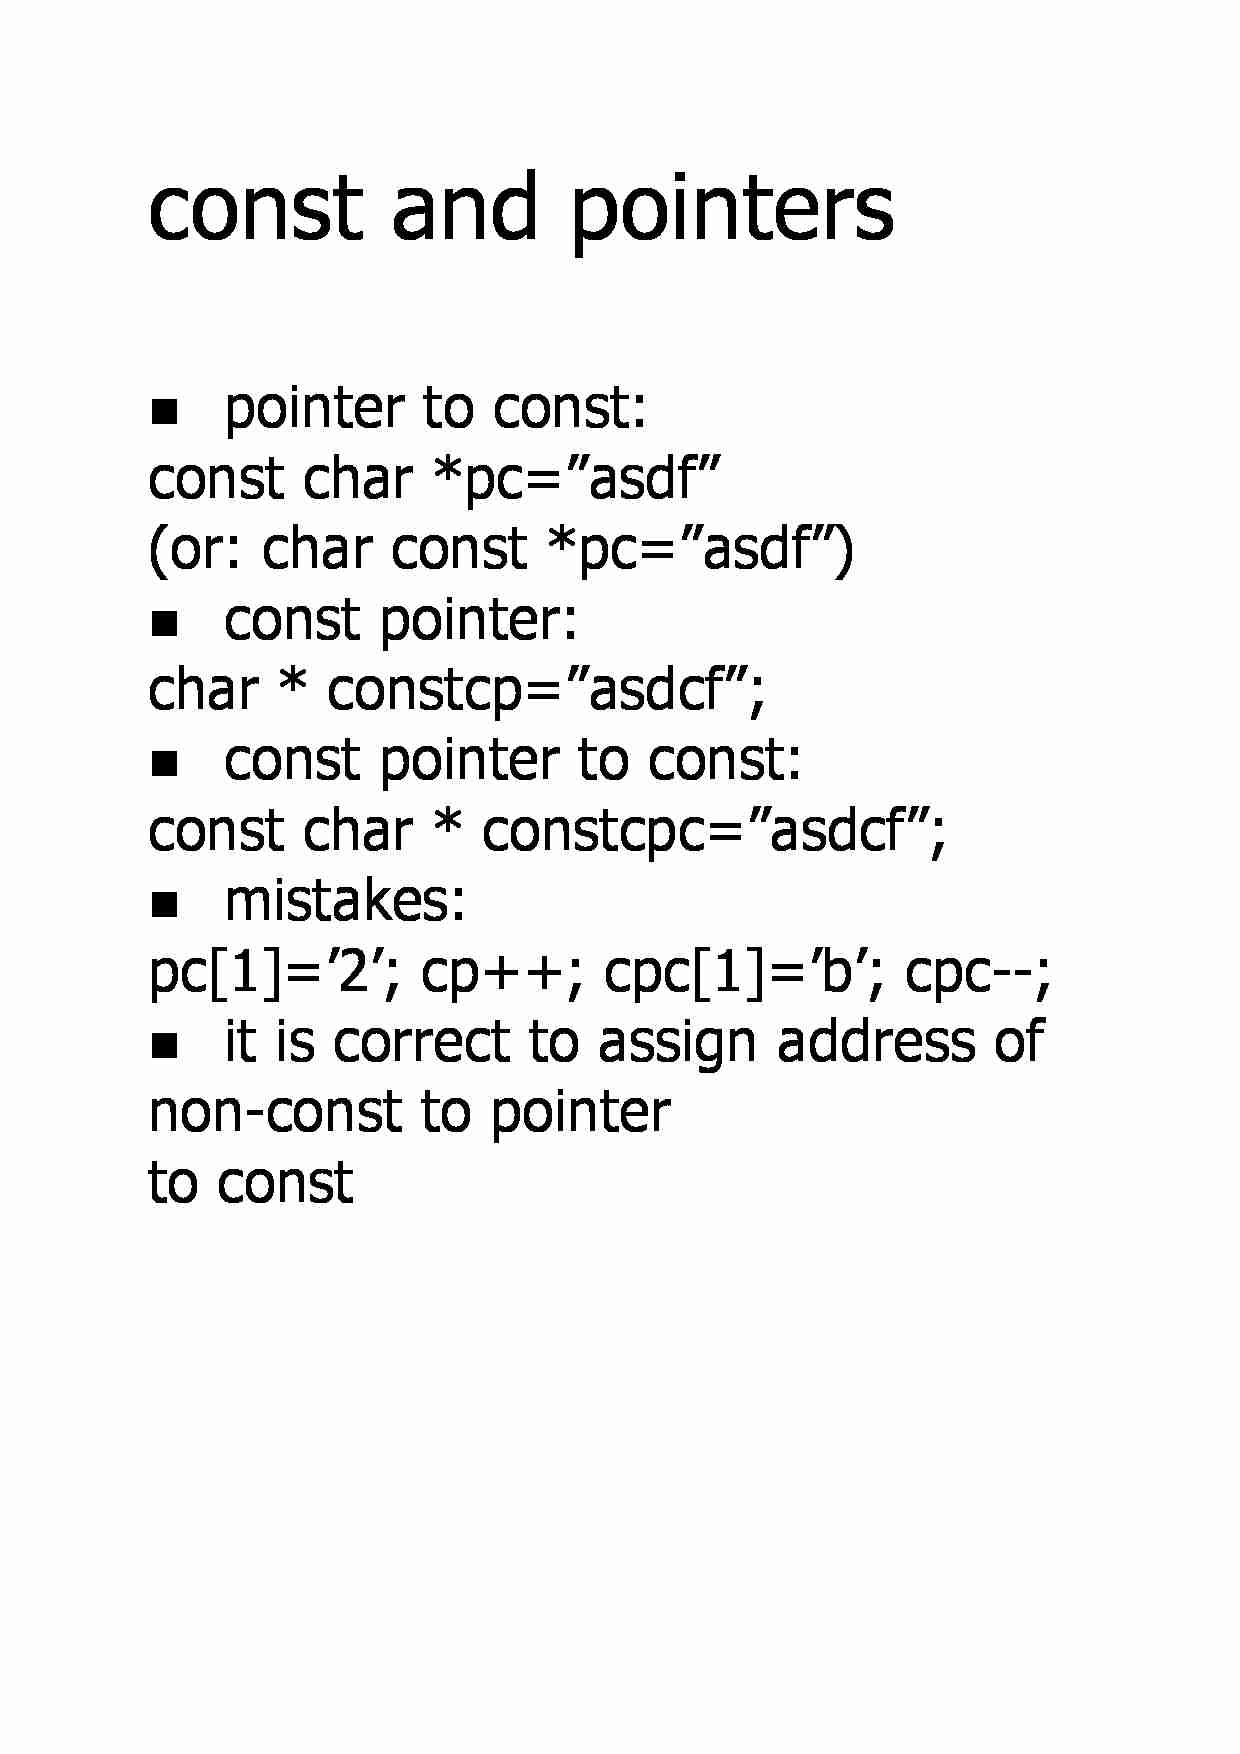 Const and pointers - strona 1